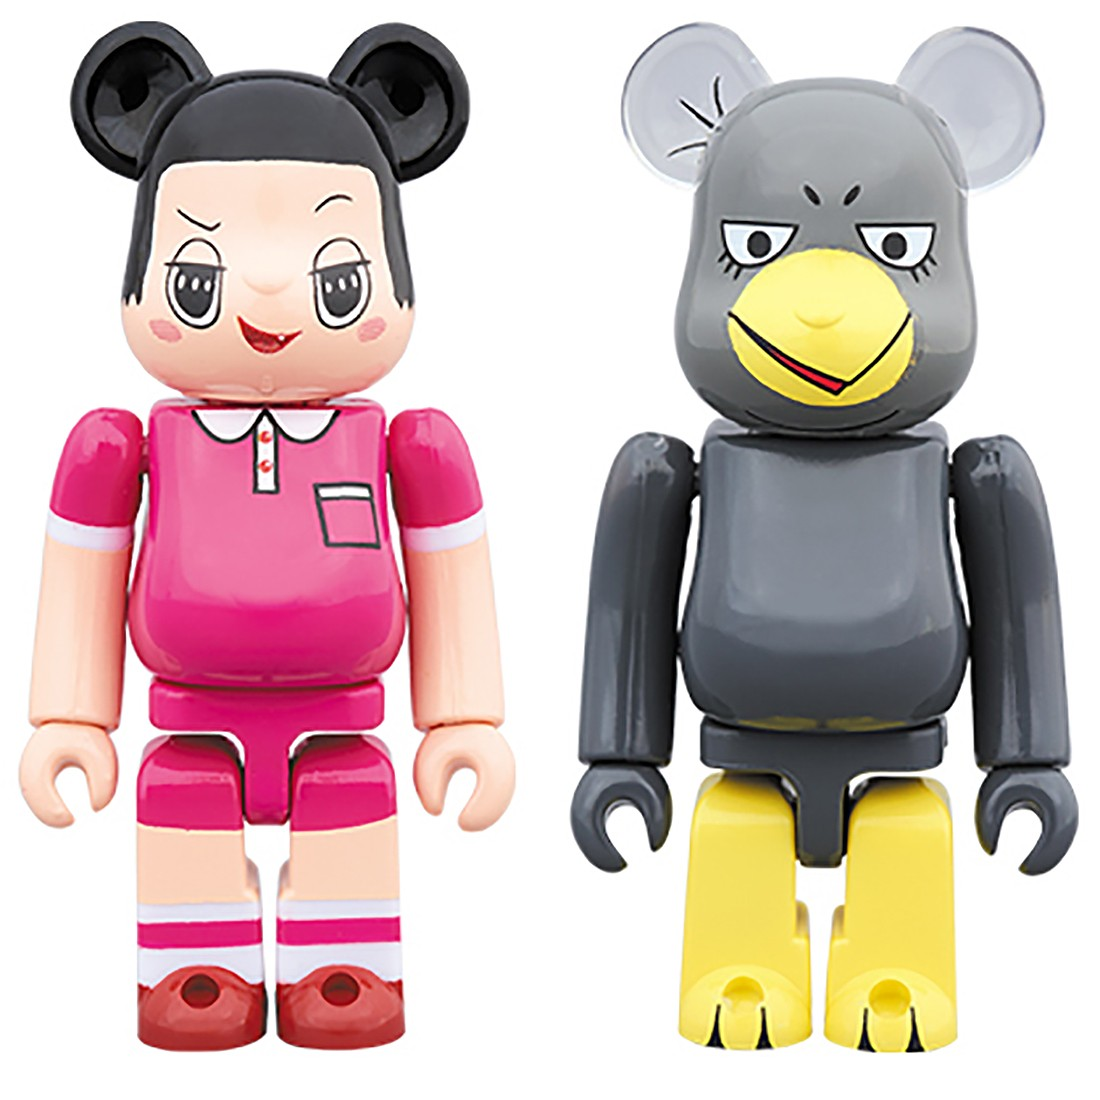 PREORDER - Medicom Chico Will Scold You Chiko-Chan And Kyoe Chan 2 Pack 100% Bearbrick Figure Set (pink / gray)